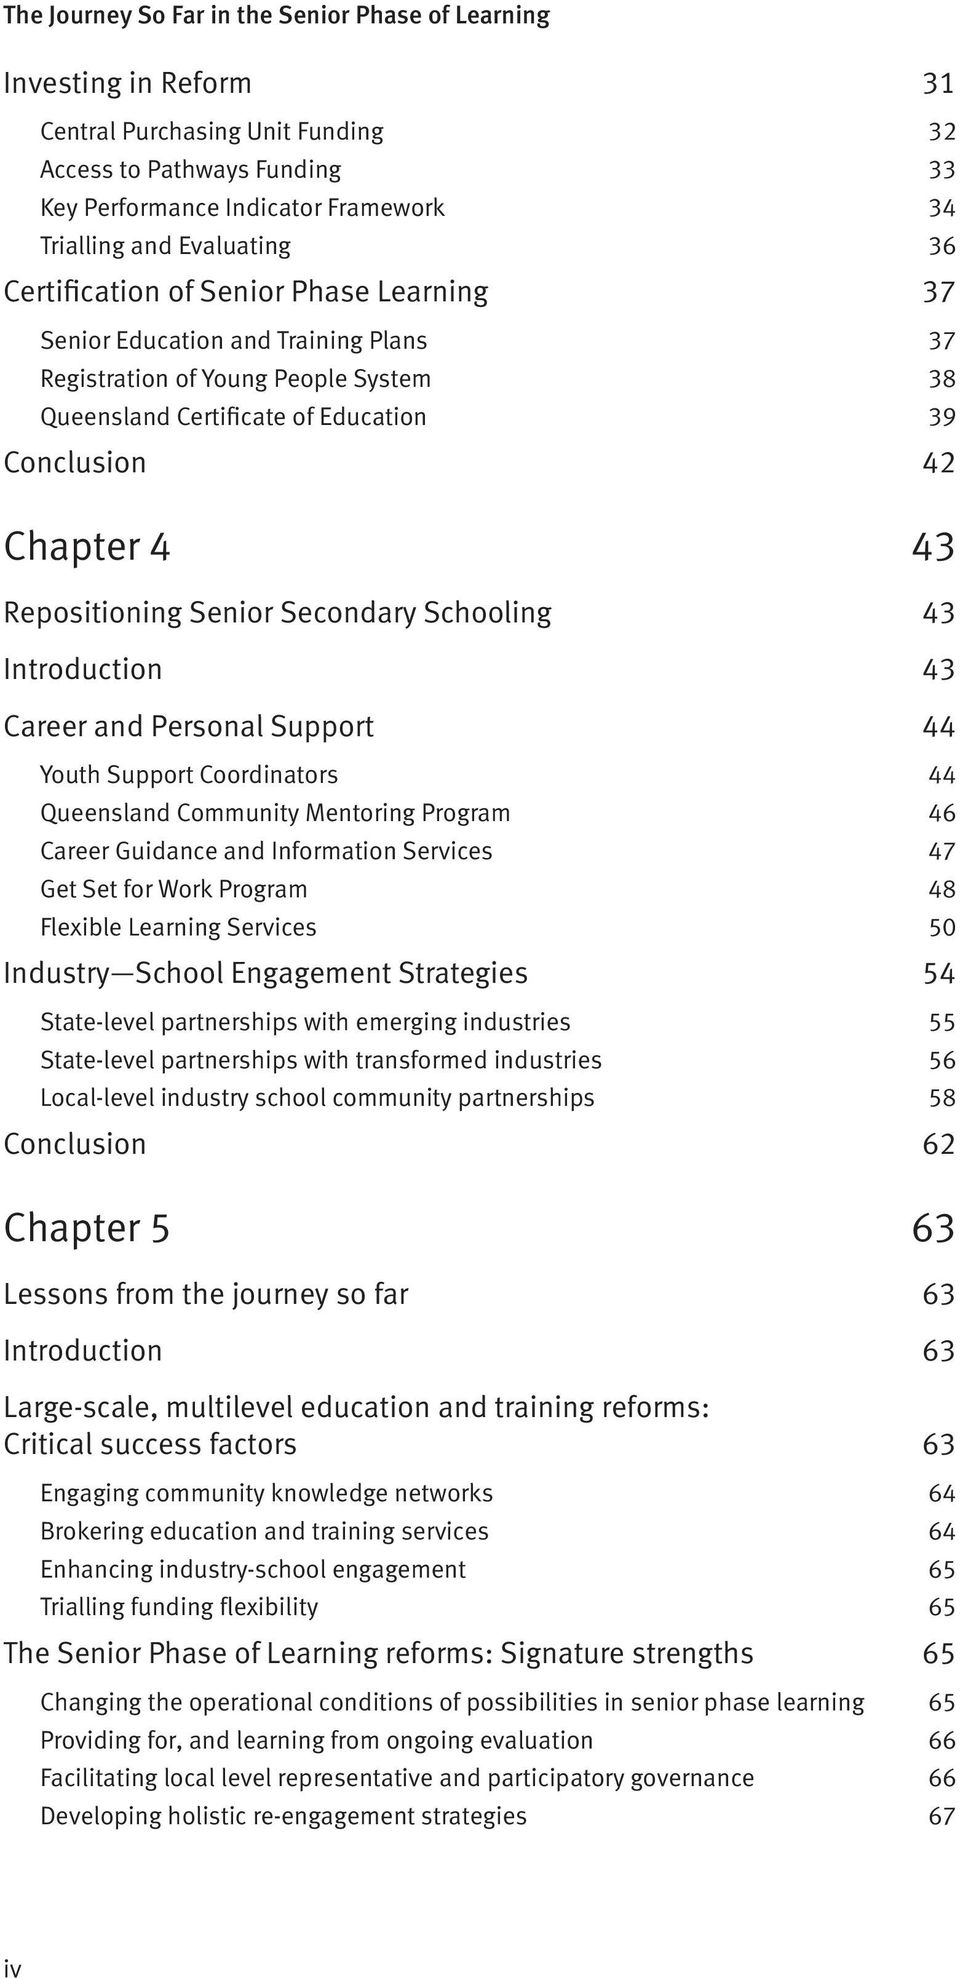 Introduction 43 Career and Personal Support 44 Youth Support Coordinators 44 Queensland Community Mentoring Program 46 Career Guidance and Information Services 47 Get Set for Work Program 48 Flexible